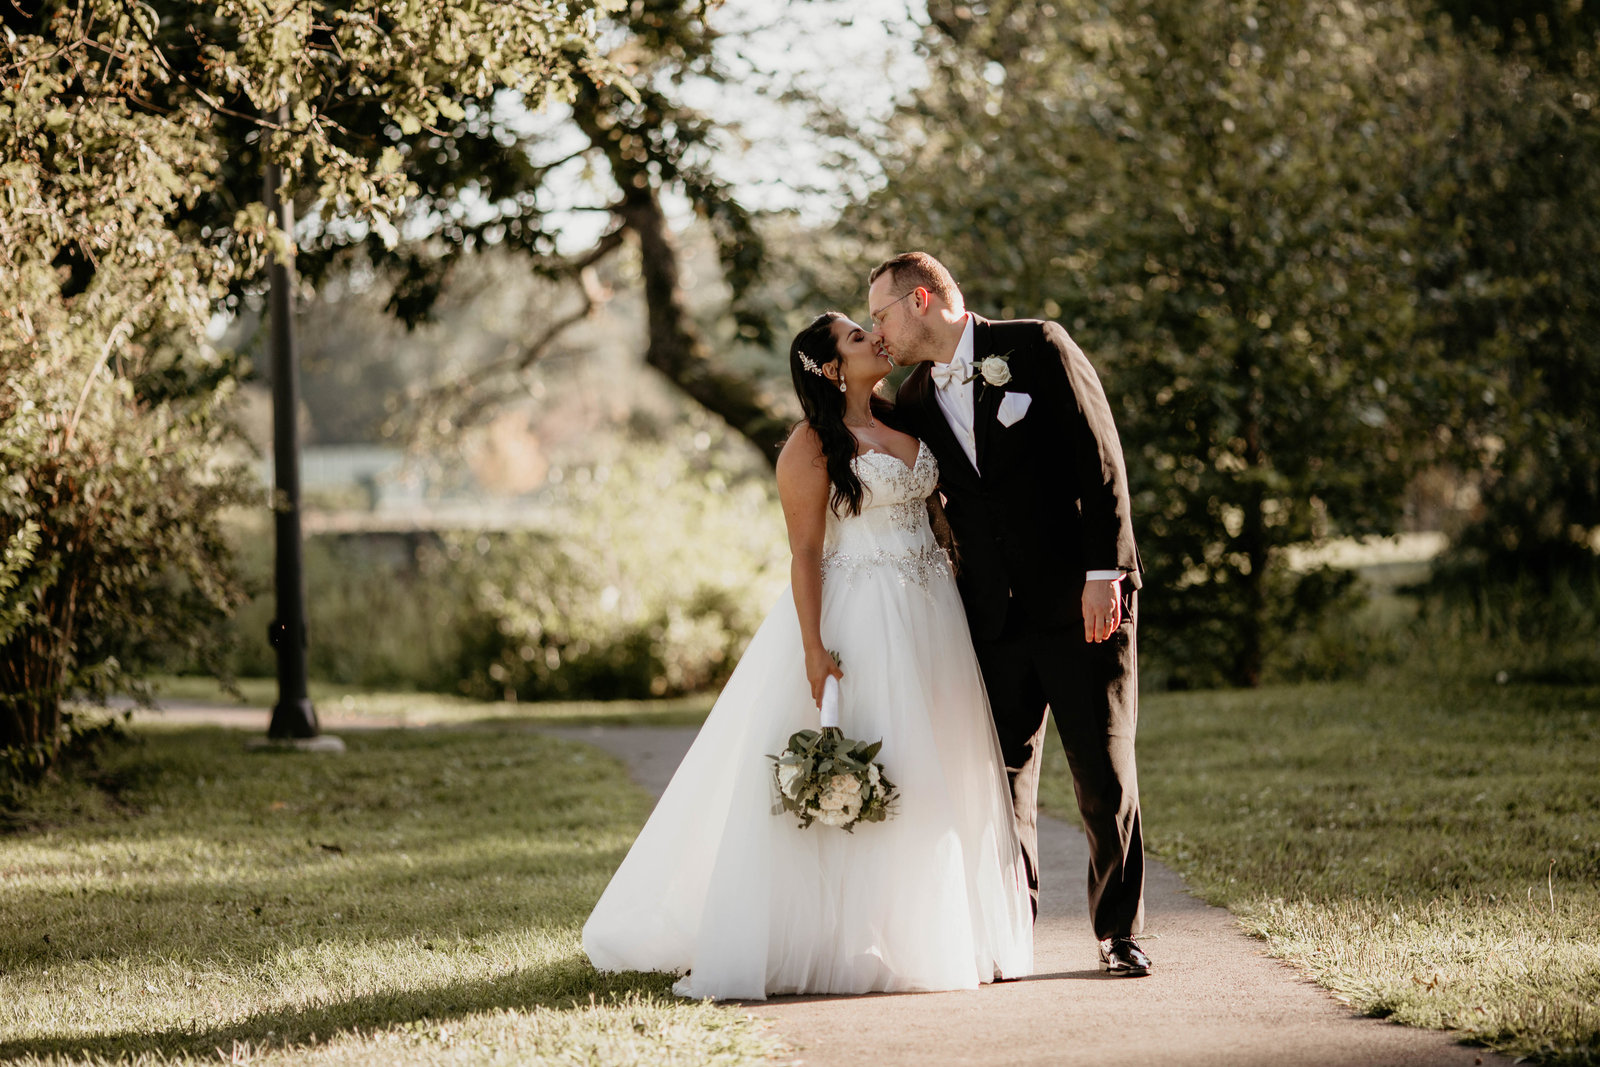 bride and groom kiss in a park.